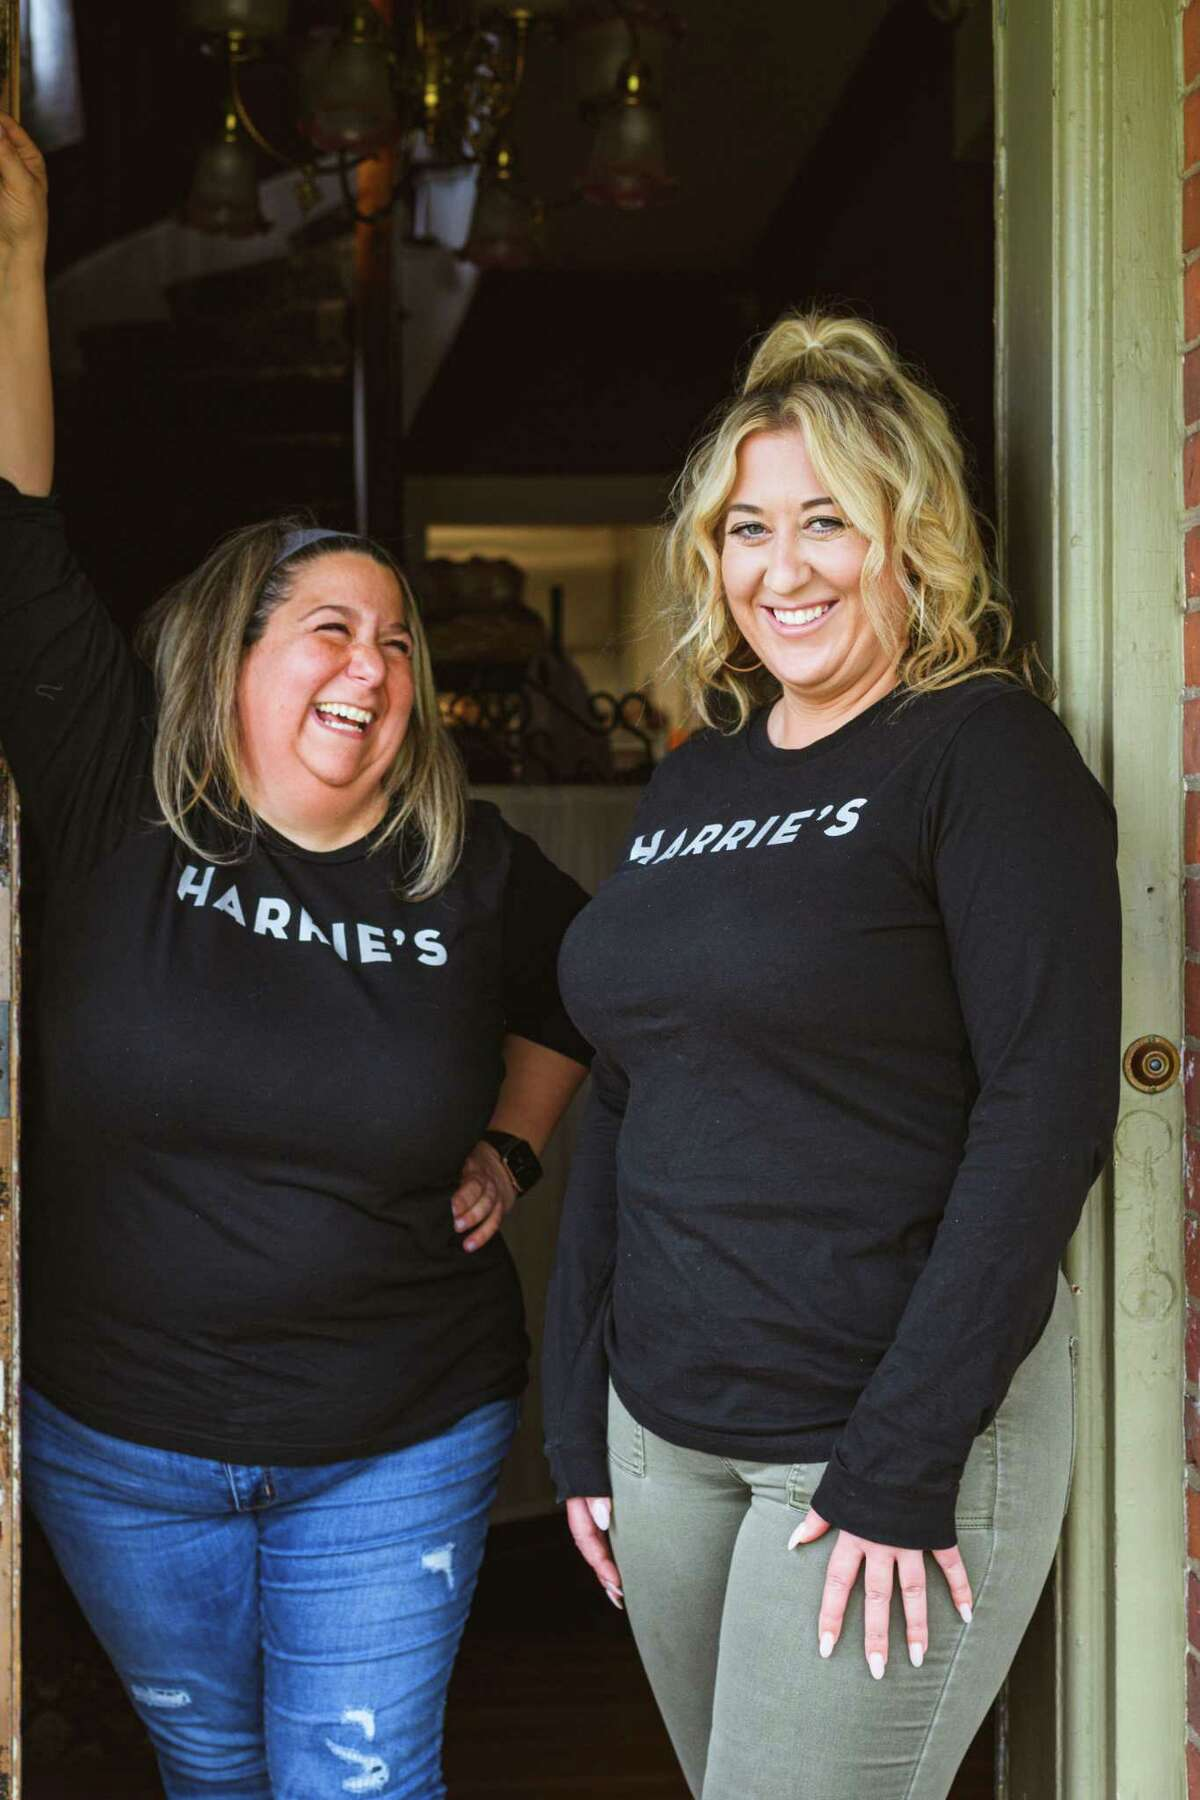 Carrie Carella, left, the founder and owner of NoRA Cupcake Company, and Heather Kelly. Carella and Kelly opened Harrie's Jailhouse together in late March.